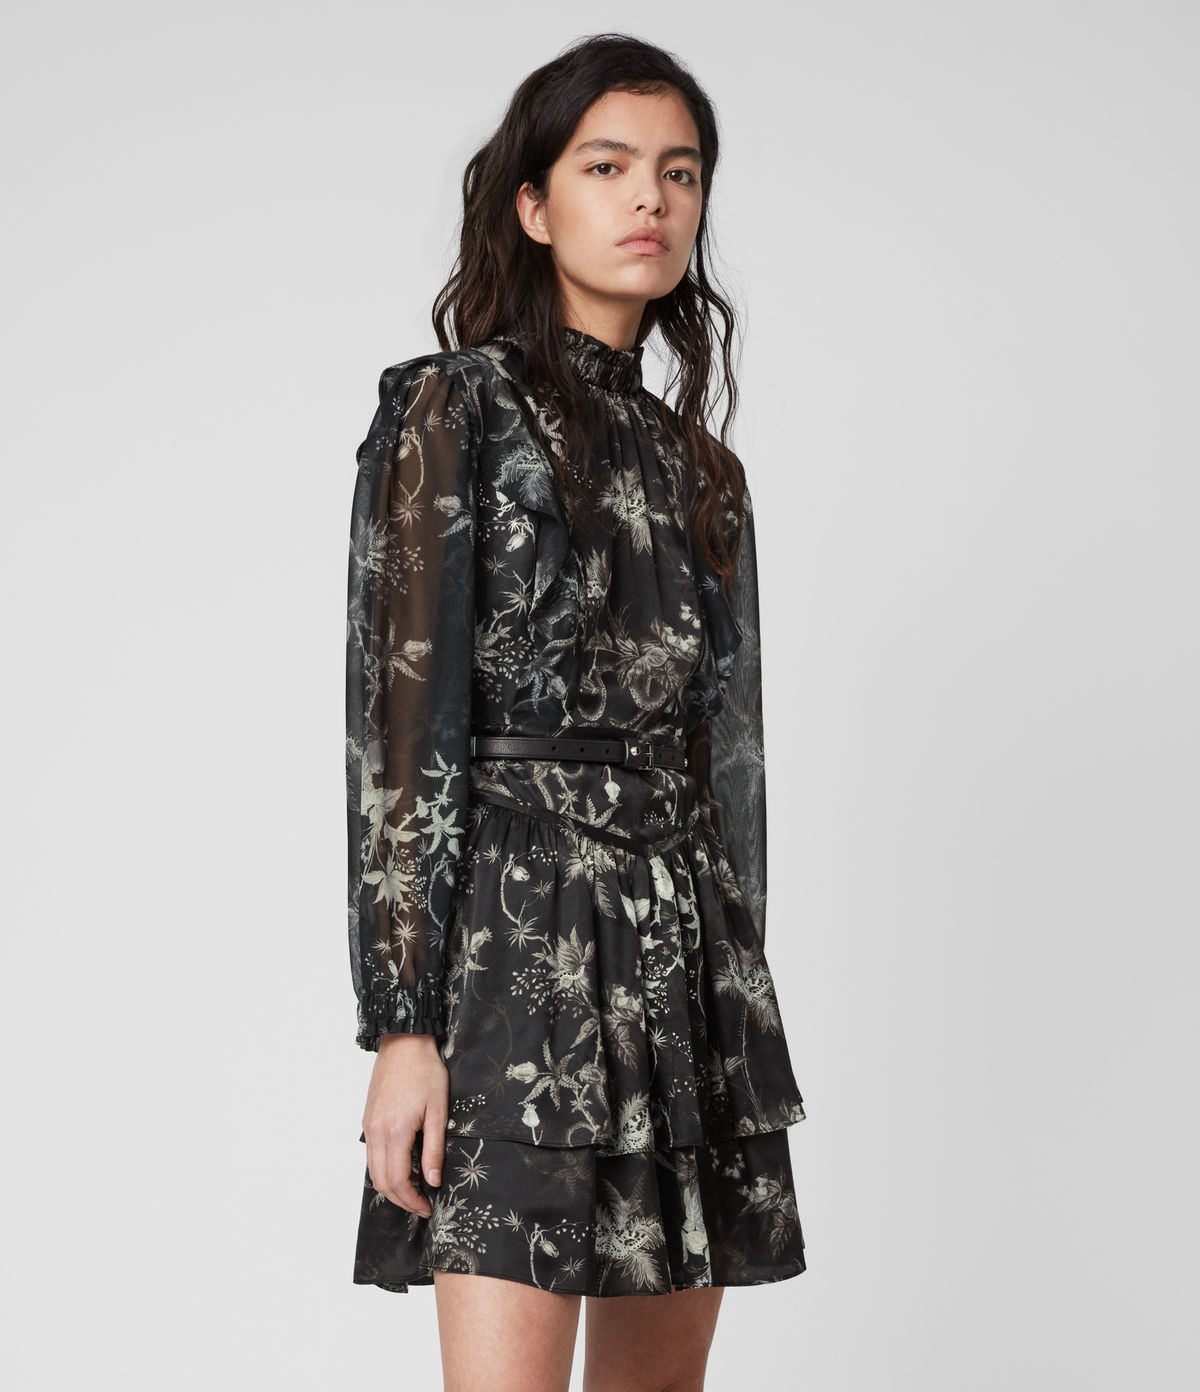 model wearing long sleeve mini dress with high neck, sheer sleeves, two tiers on skirt in black floral print